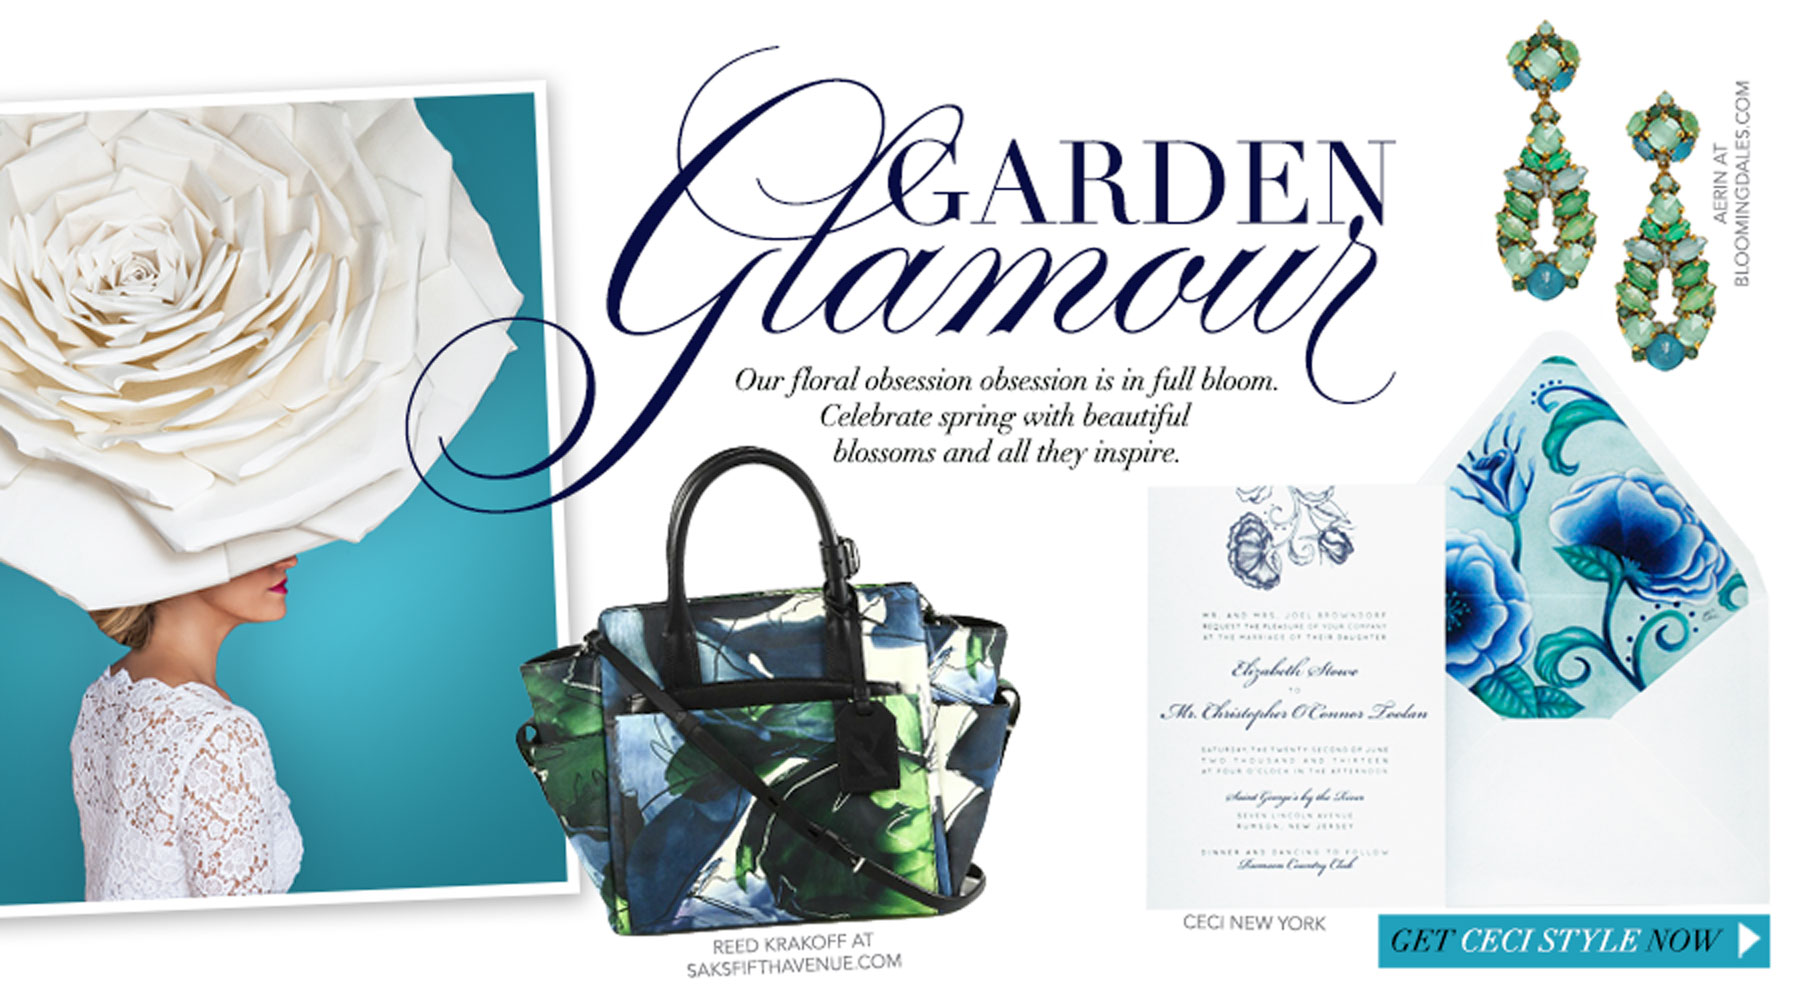 Garden Glamour - Our floral obsession is in full bloom. Celebrate spring with beautiful blossoms and all they inspire.